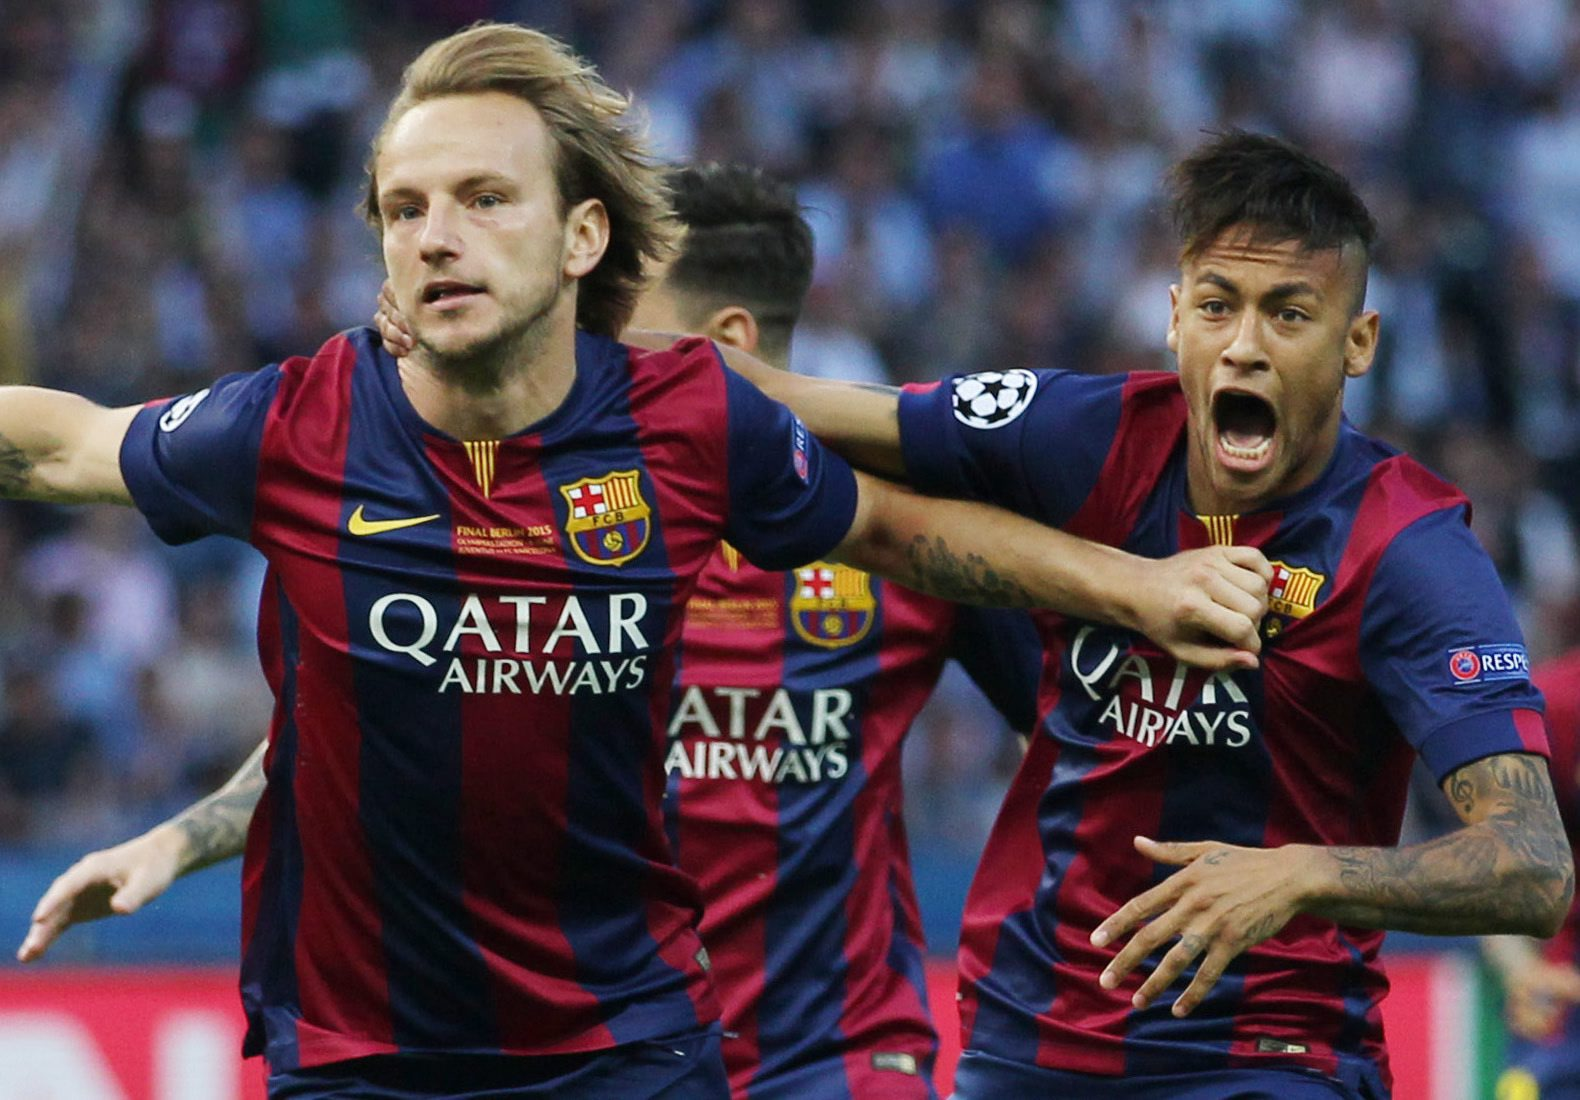 Ivan Rakitic opened the scoring for Barcelona in the 4th minute